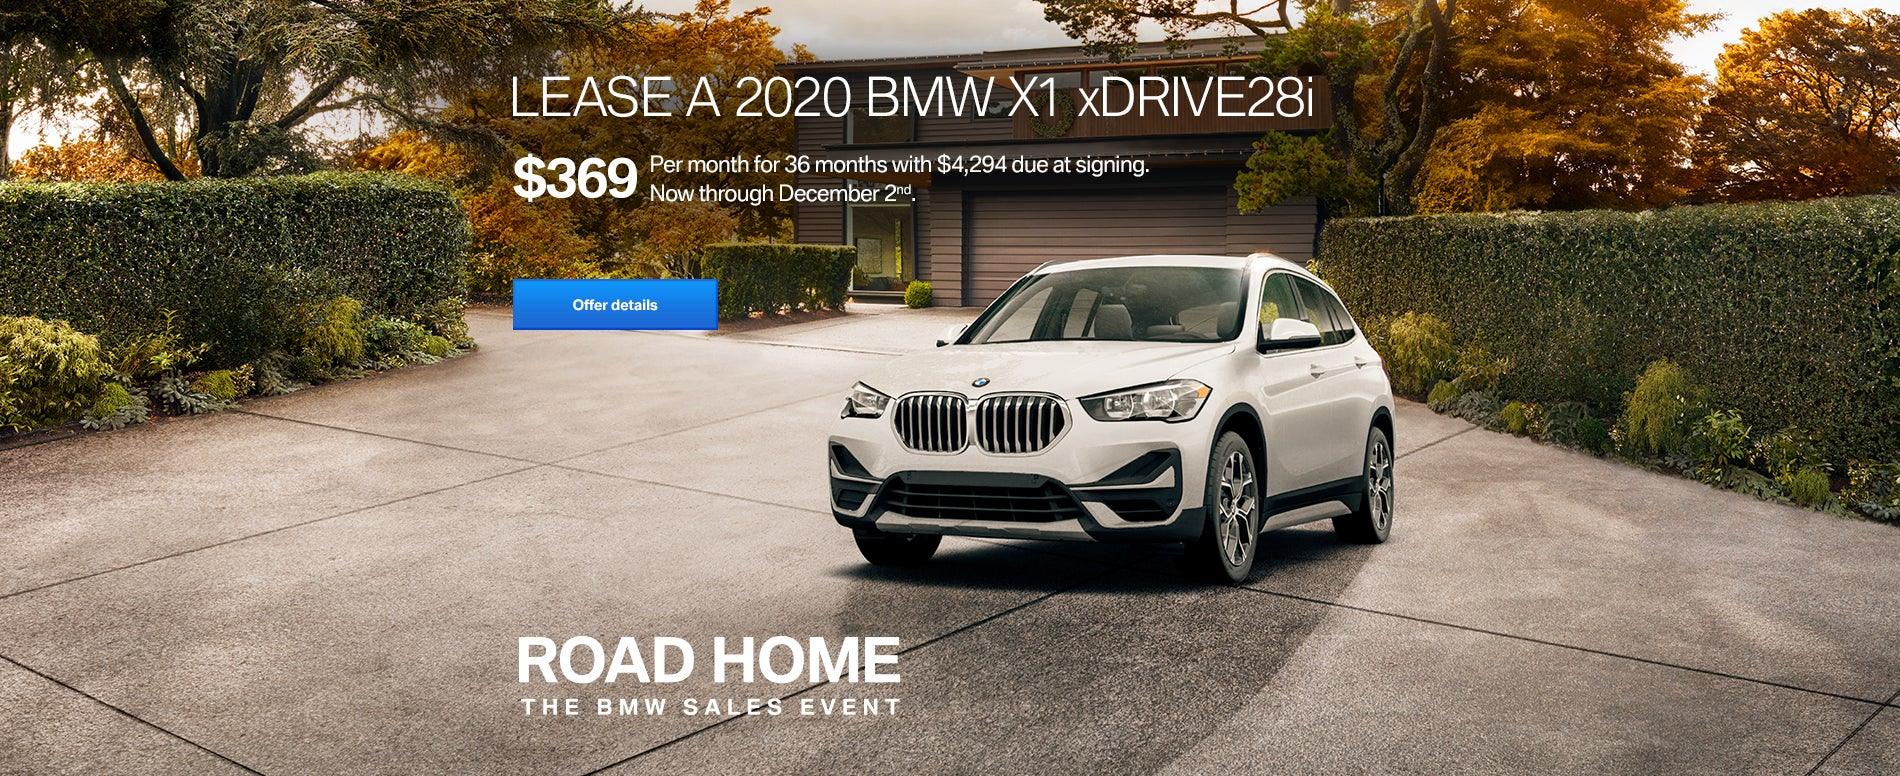 True Cars Used >> Bmw Dealer In Edison Nj Used Cars Edison Open Road Bmw